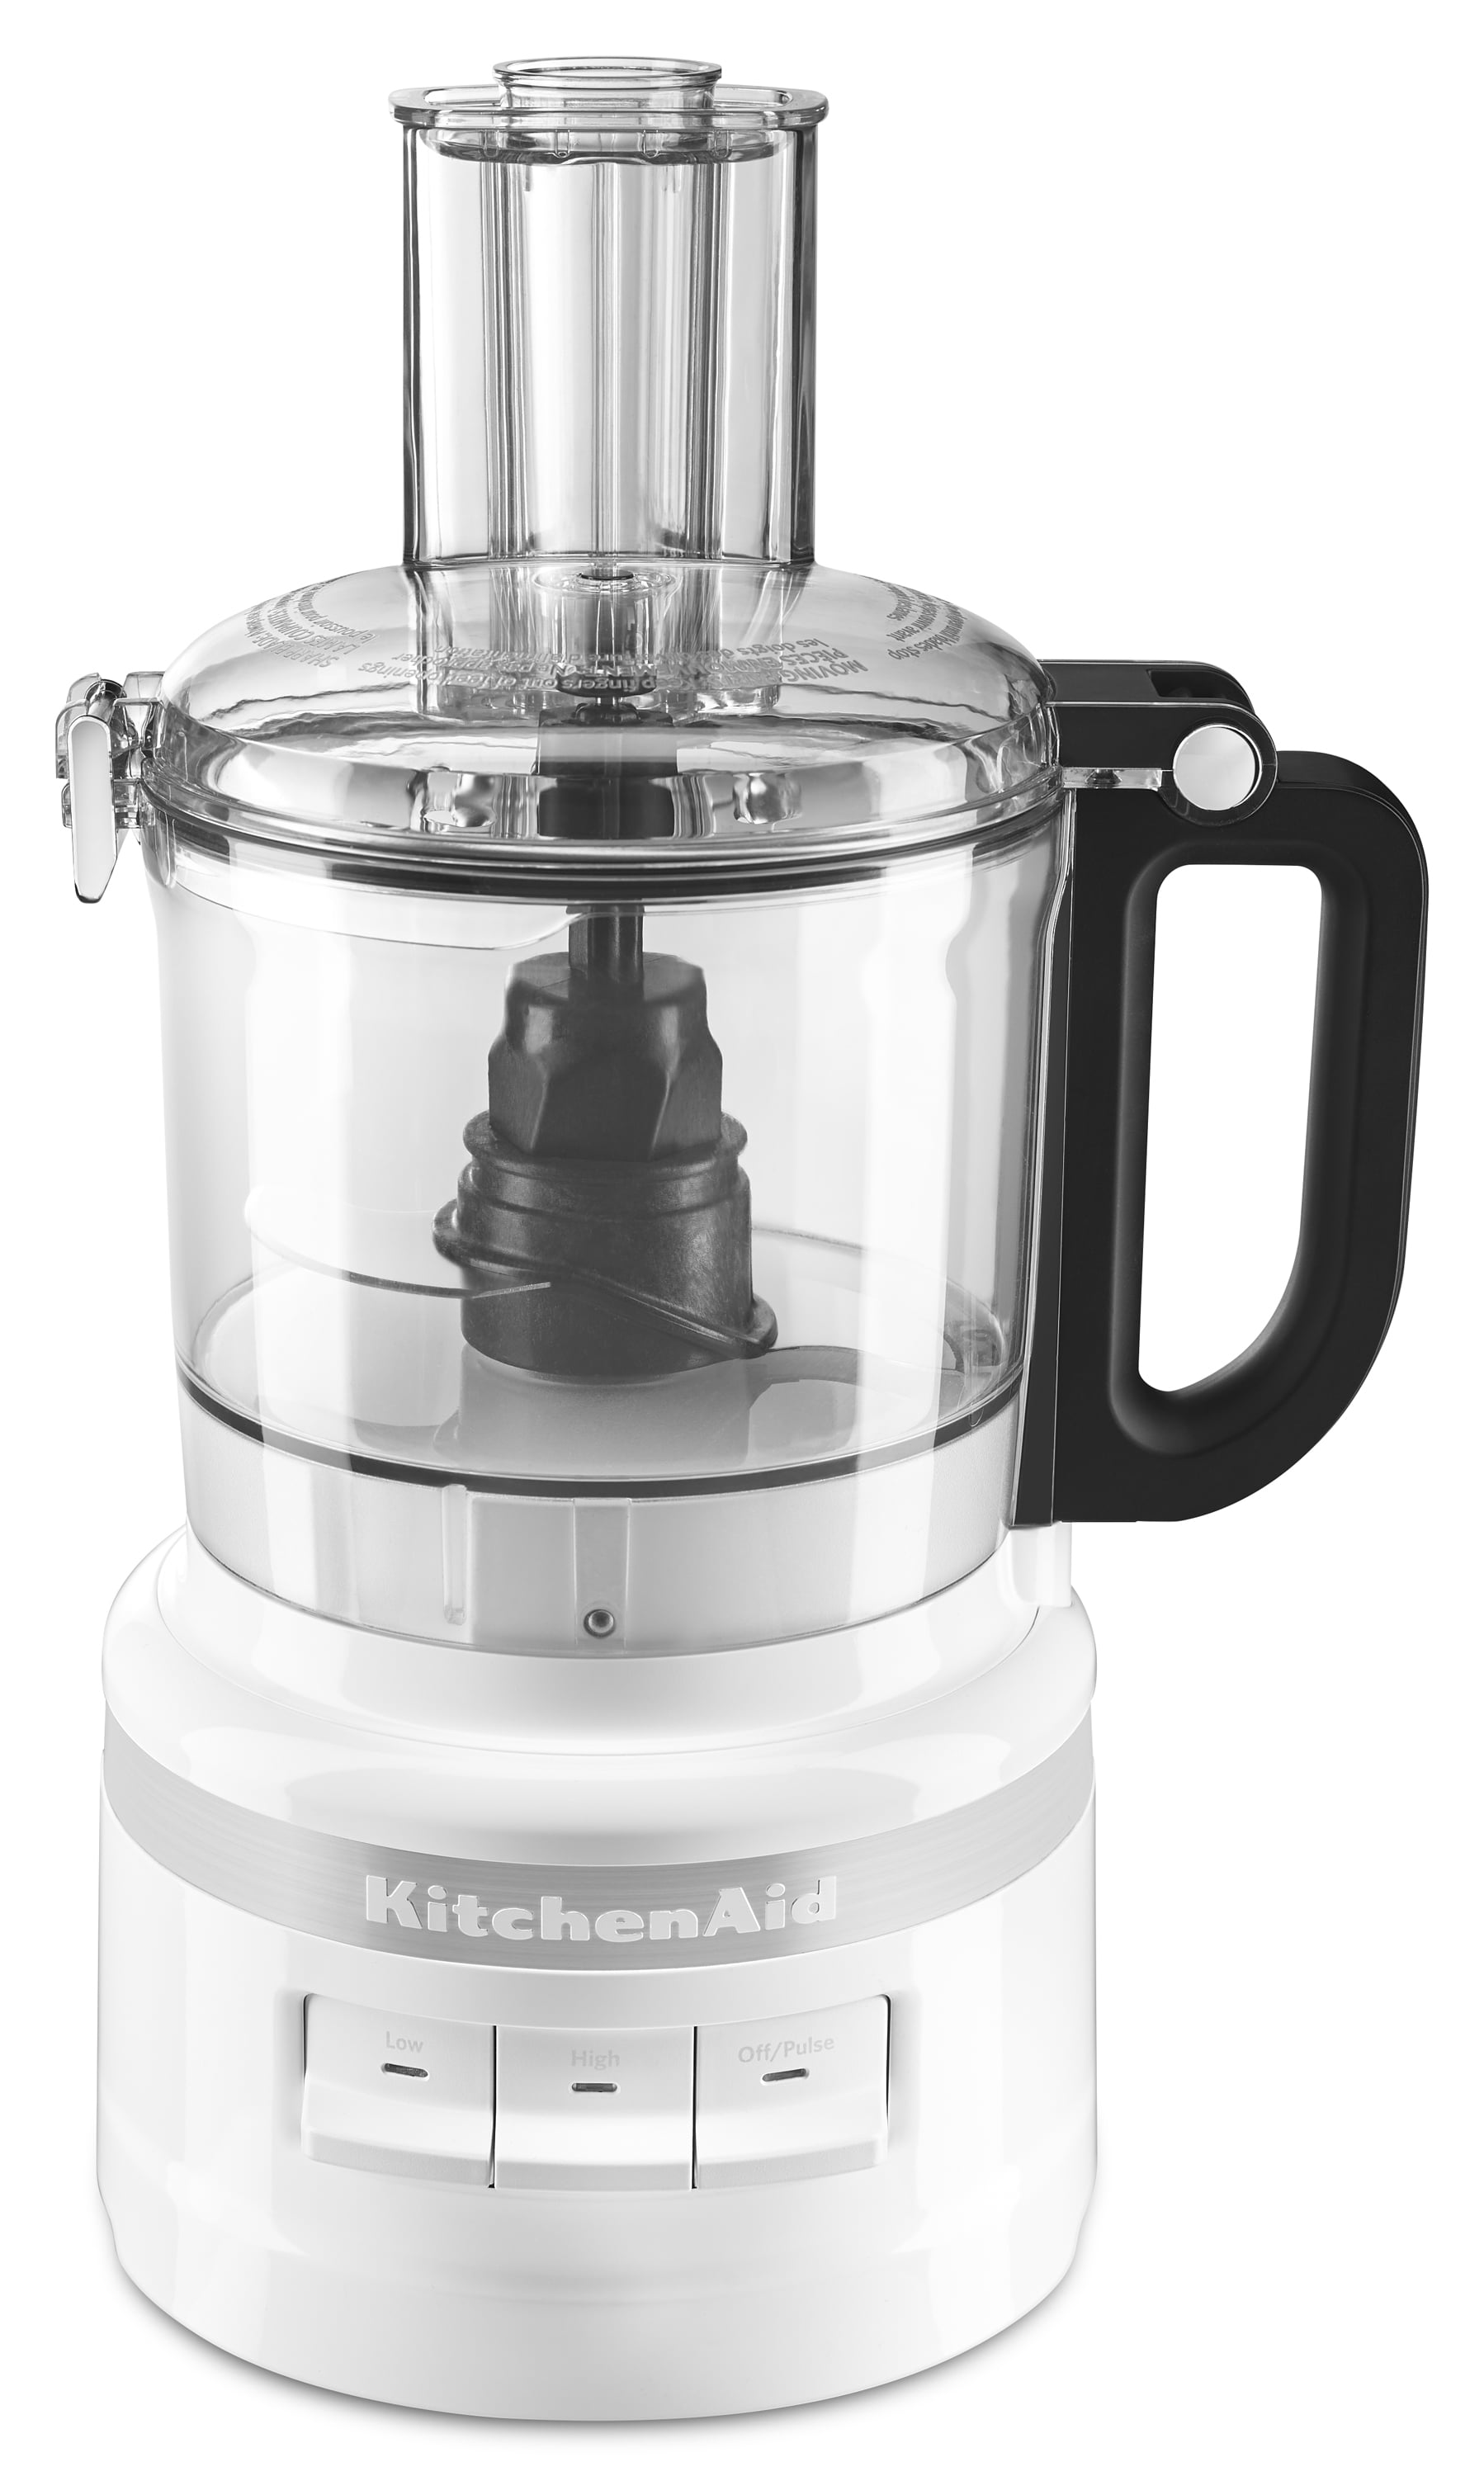 Kitchenaid 7 Cup Food Processor White Kfp0718wh